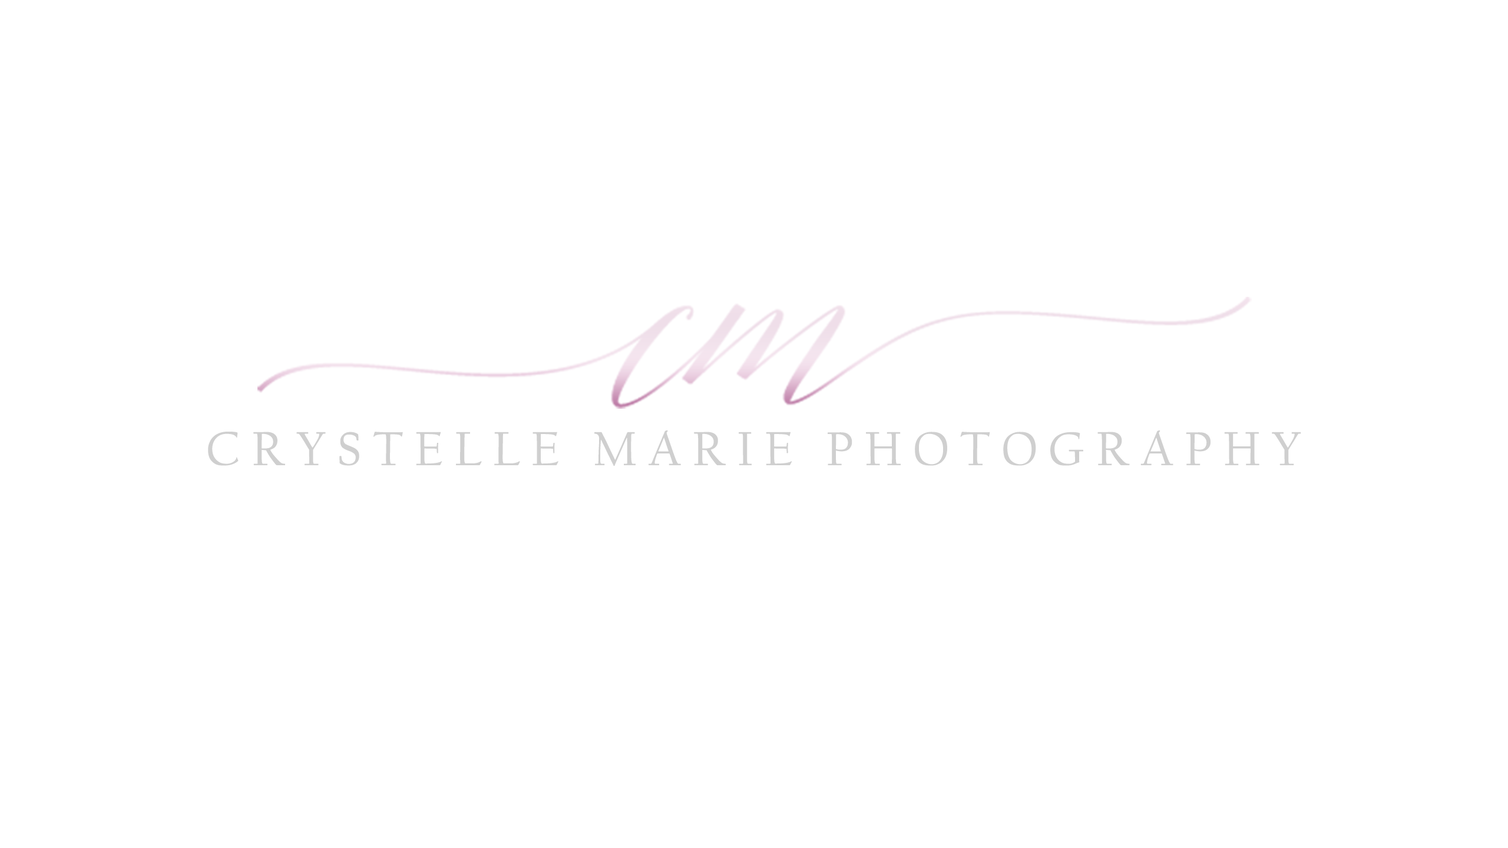 Crystelle Marie Photography